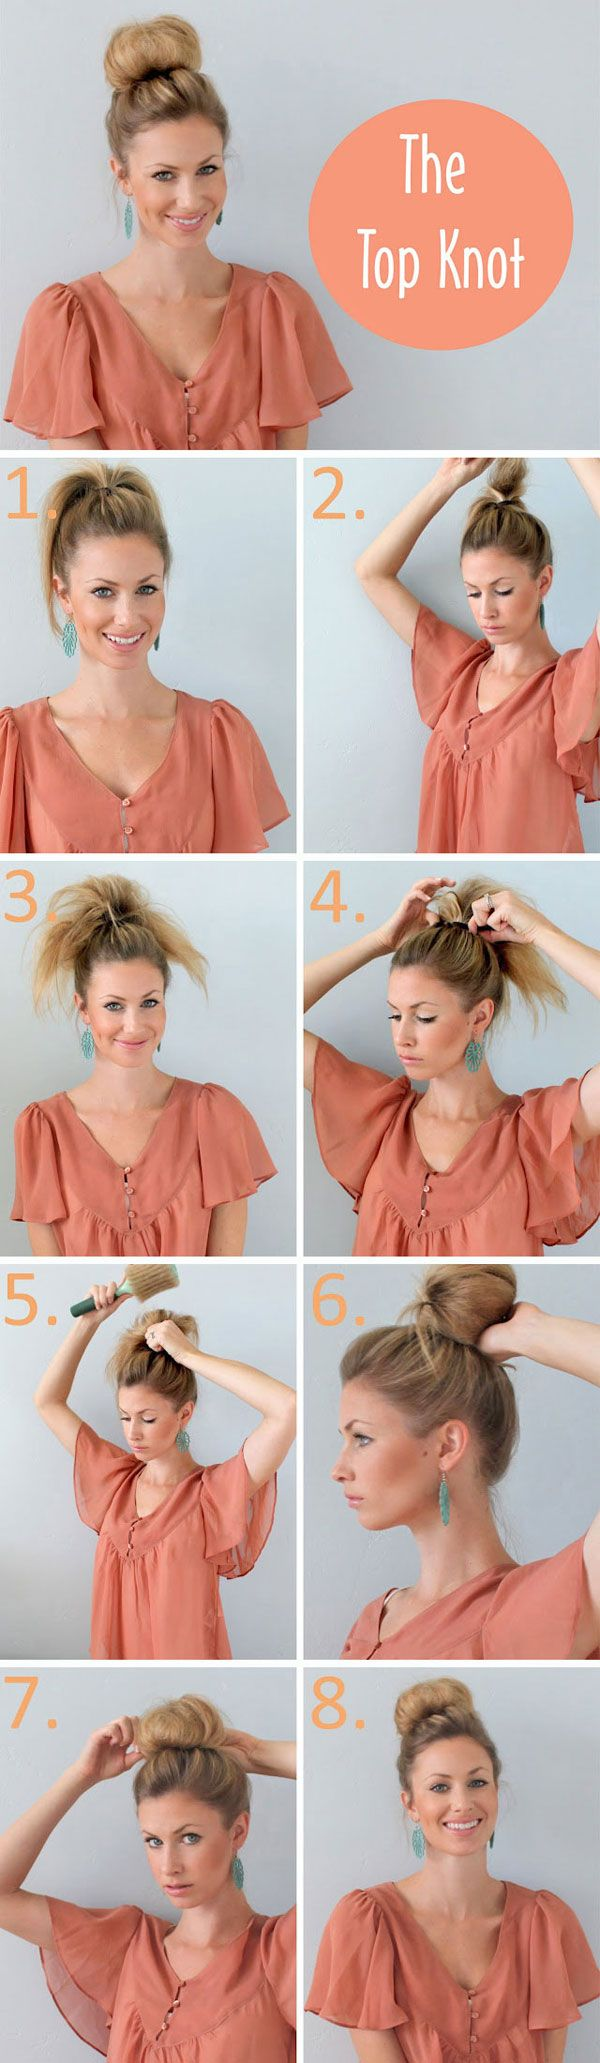 Tickled topknot